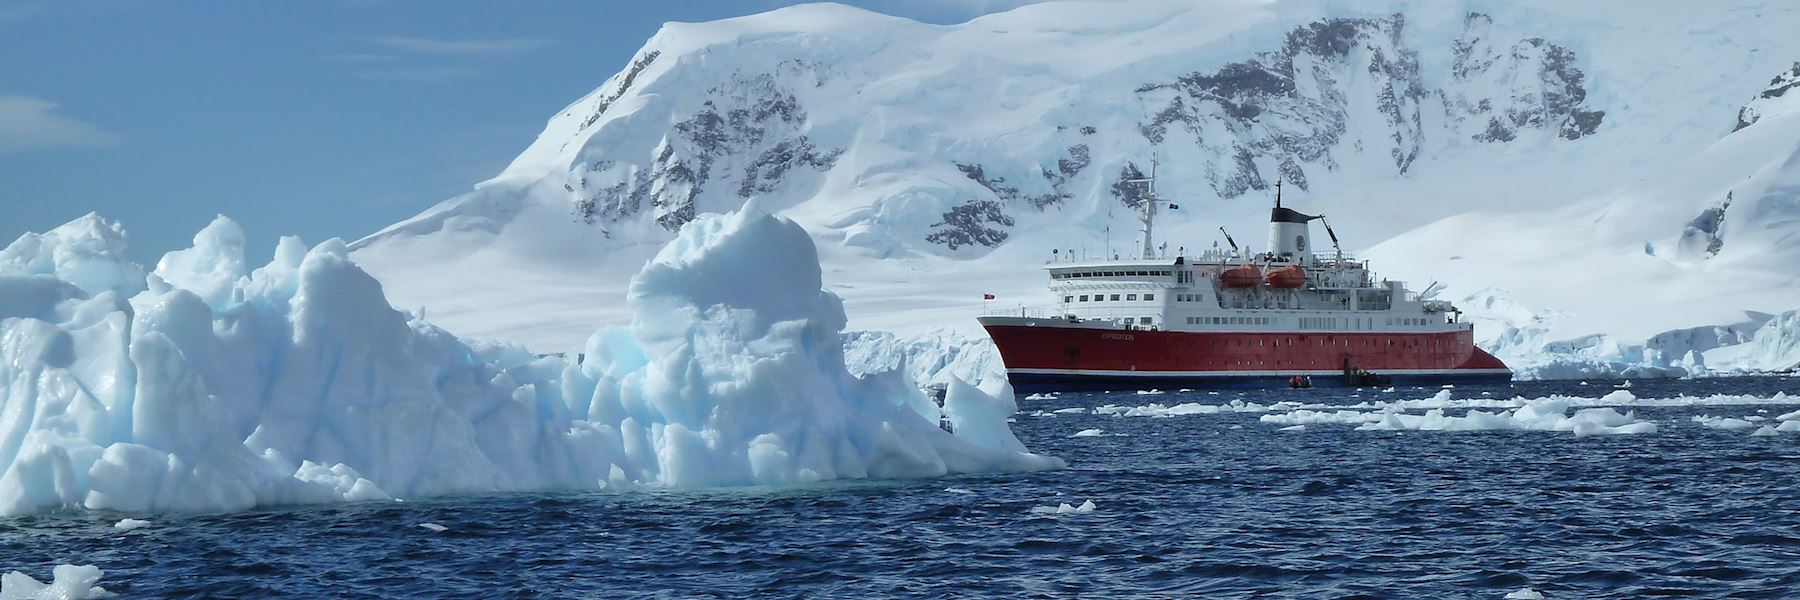 Cruise Ships in Antarctica: M/S Expedition